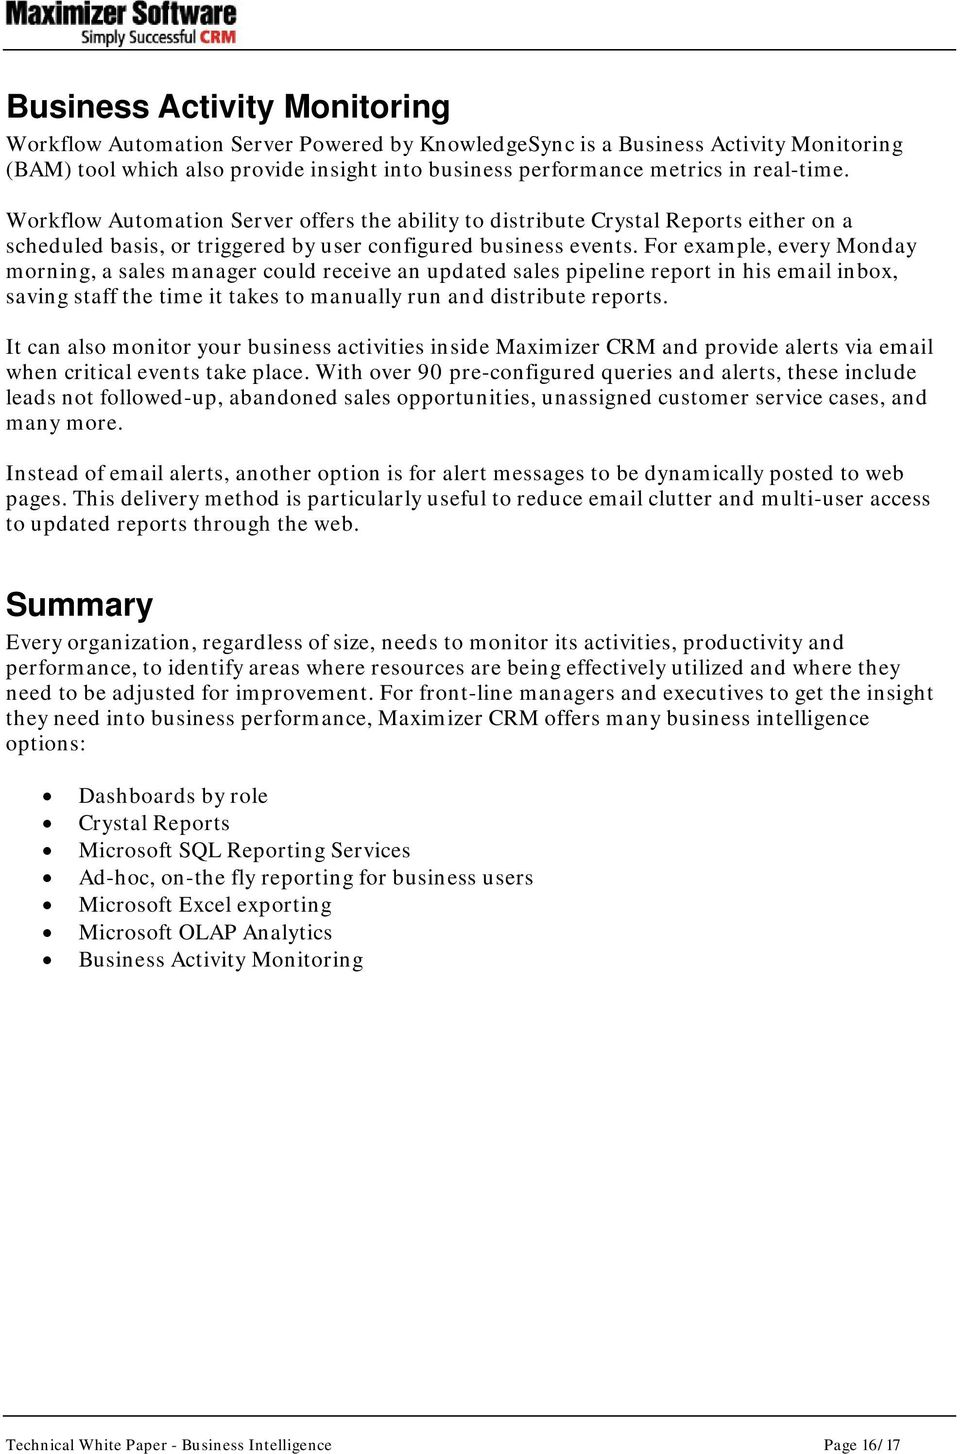 Business Intelligence with Maximizer CRM 10: - PDF